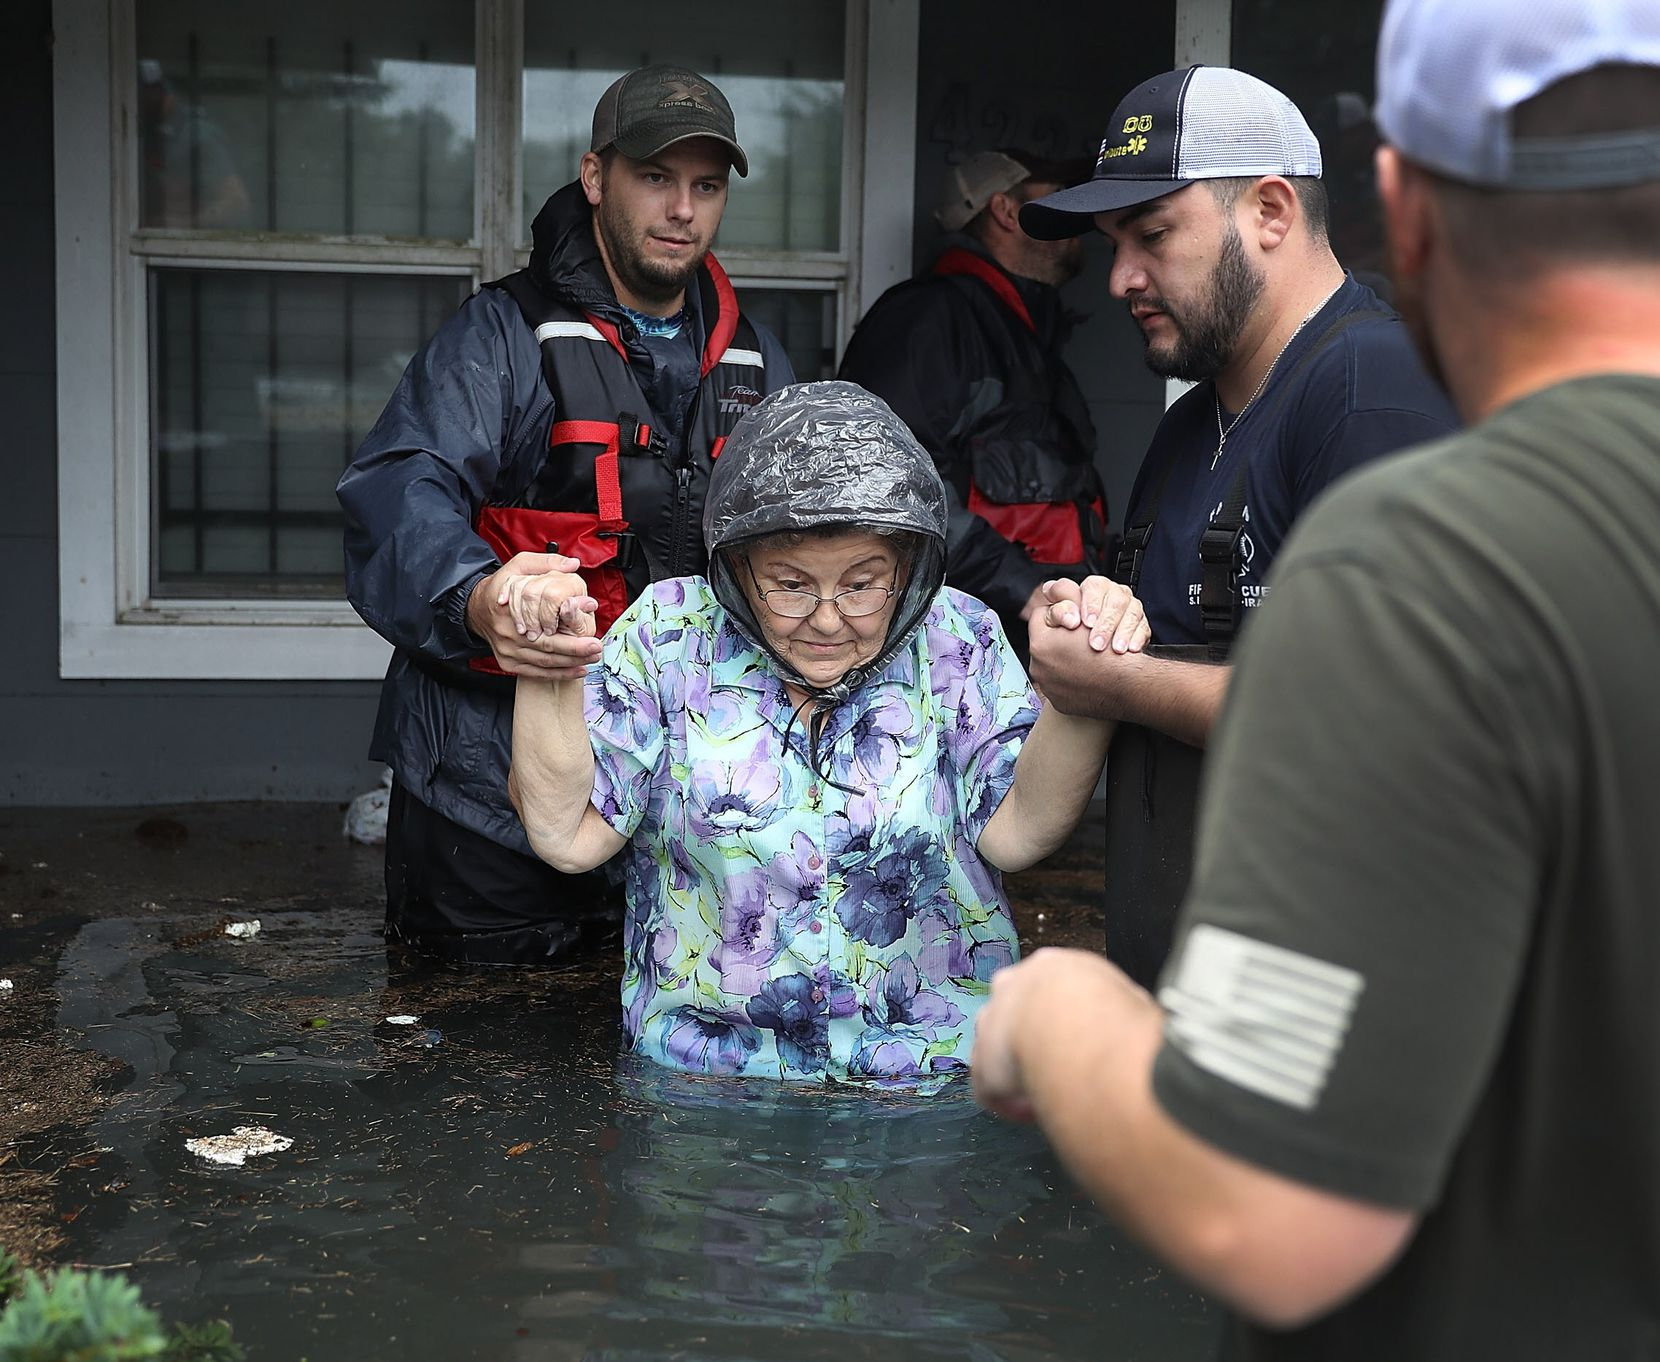 Volunteer rescuer workers help a woman from her home that was inundated with the flooding of Hurricane Harvey on August 30, 2017 in Port Arthur, Texas. Harvey, which made landfall north of Corpus Christi late Friday evening, is expected to dump upwards to 40 inches of rain in Texas over the next couple of days.